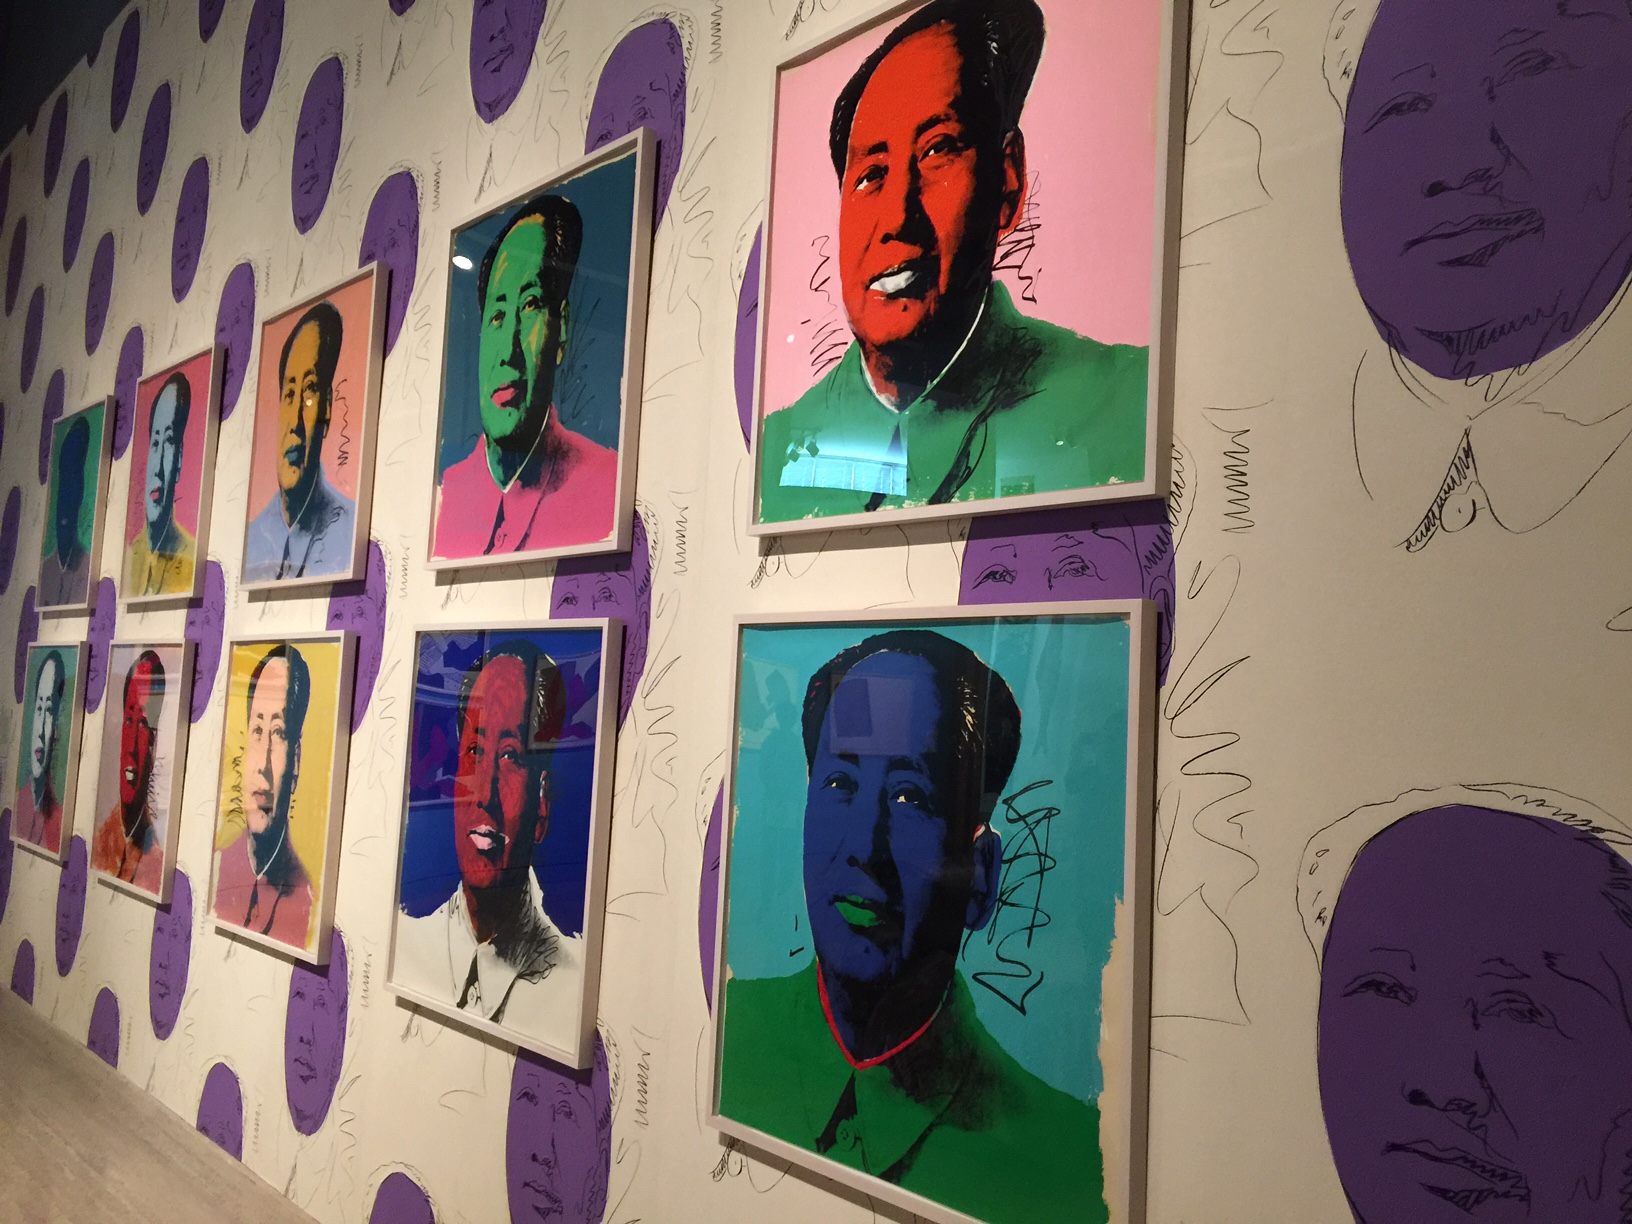 andy warhol museum - HD 1632×1224